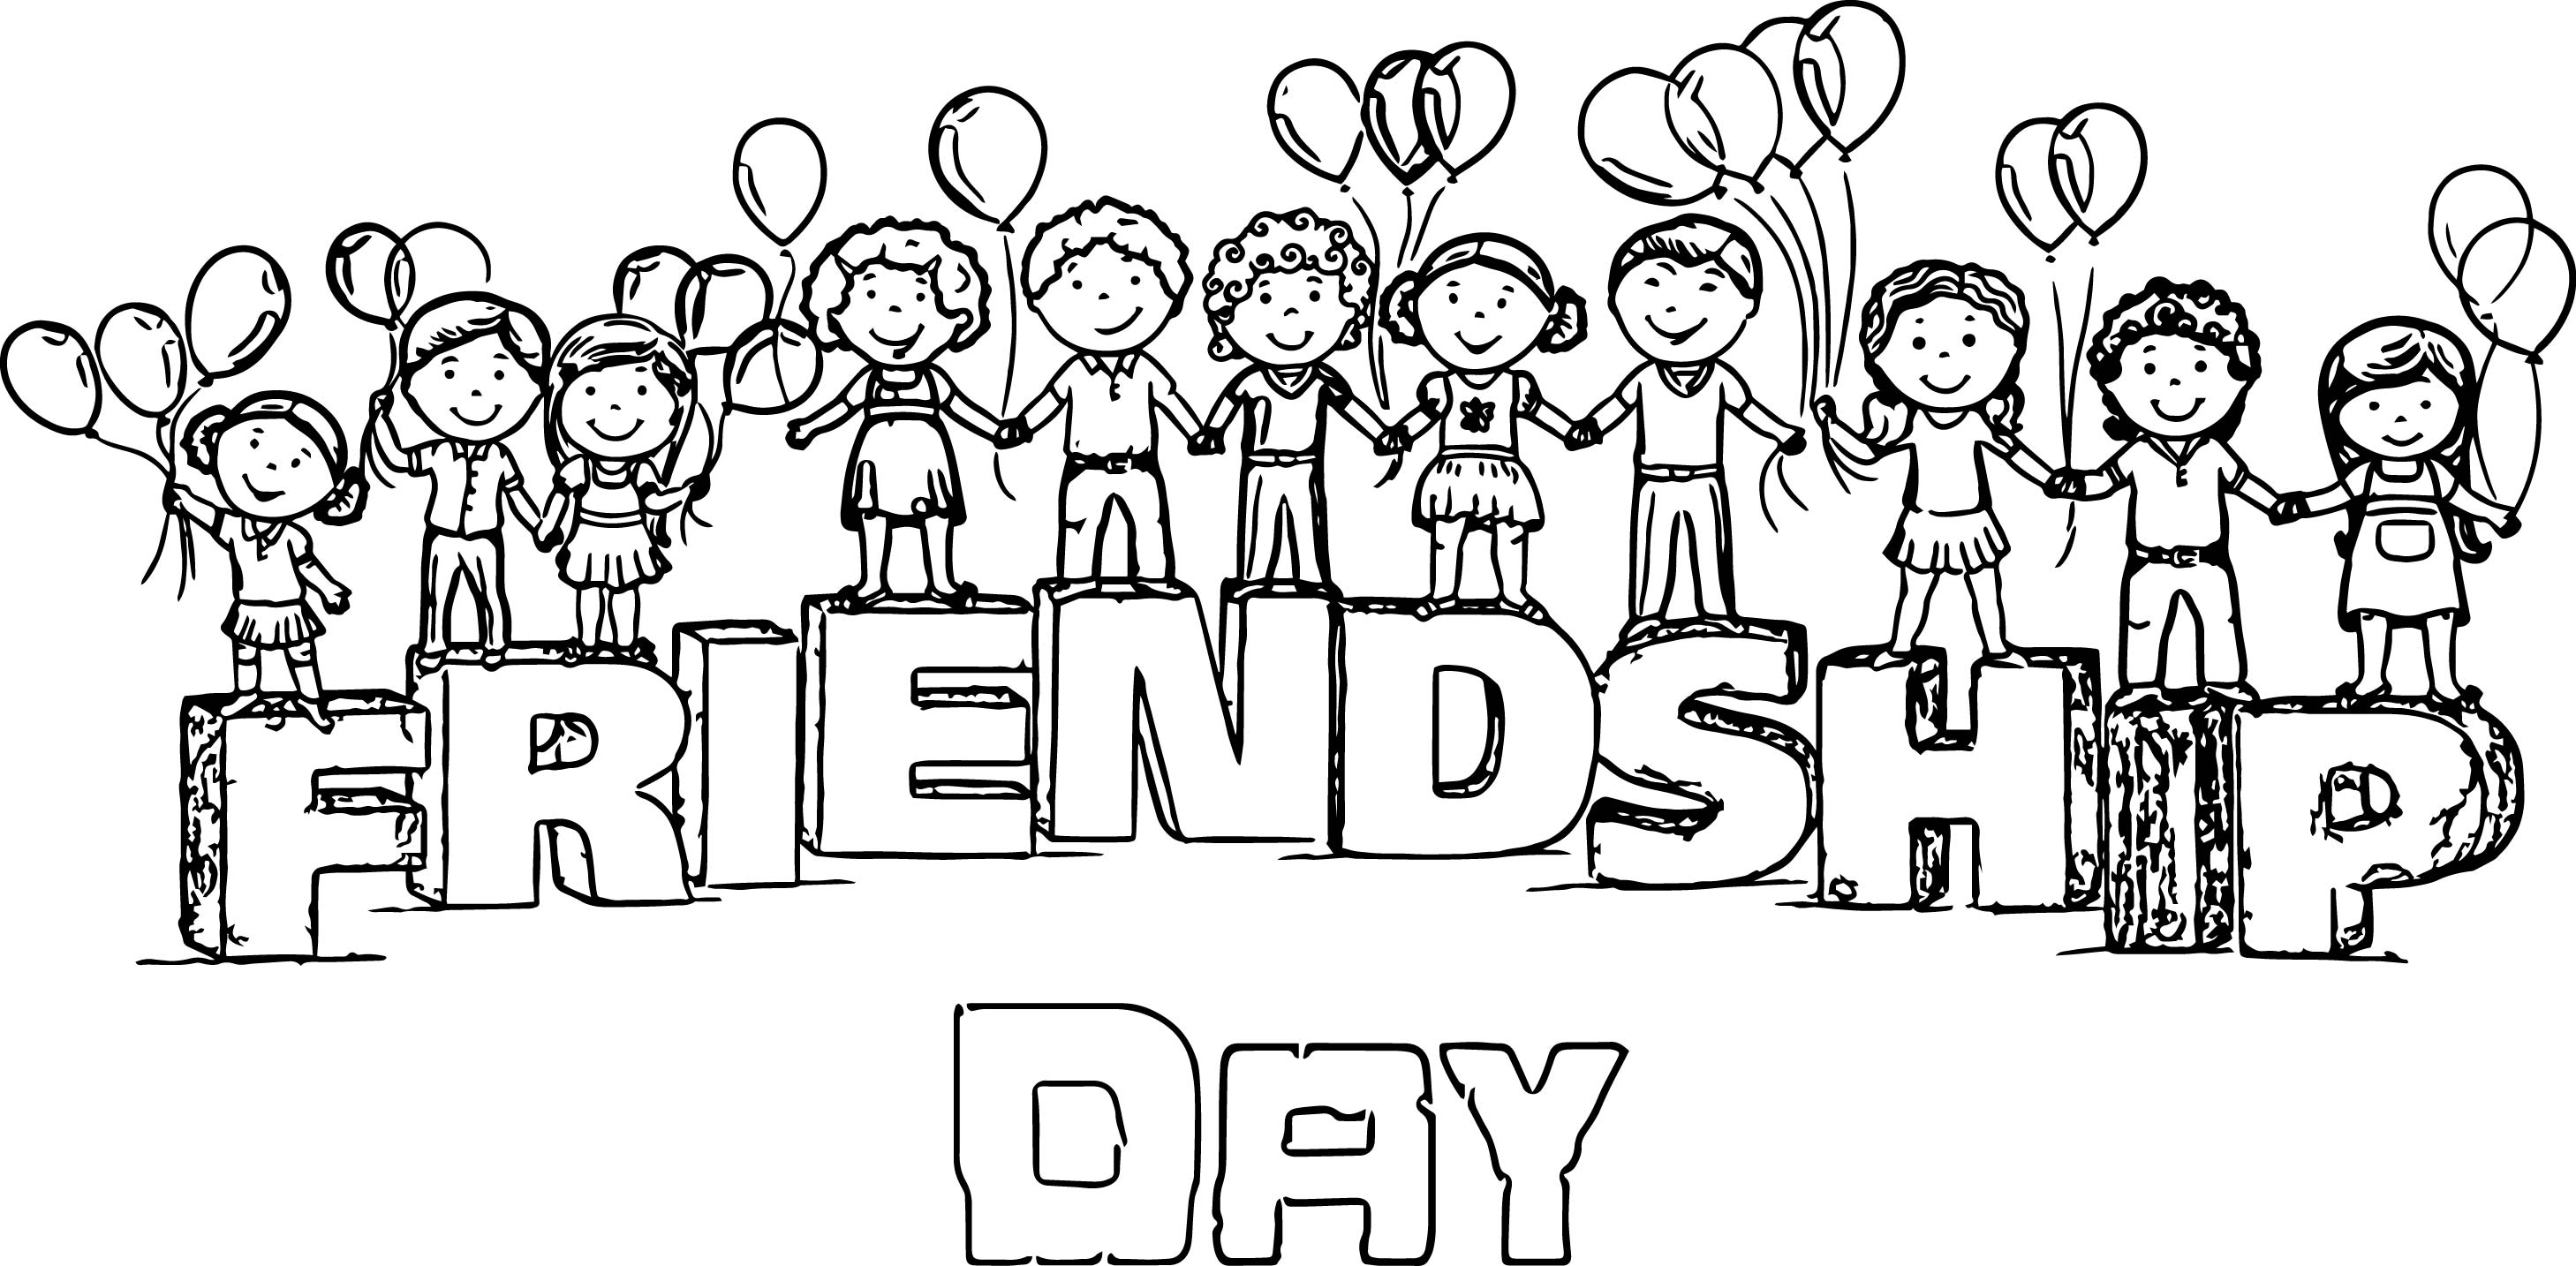 preschool coloring pages friends - photo#32